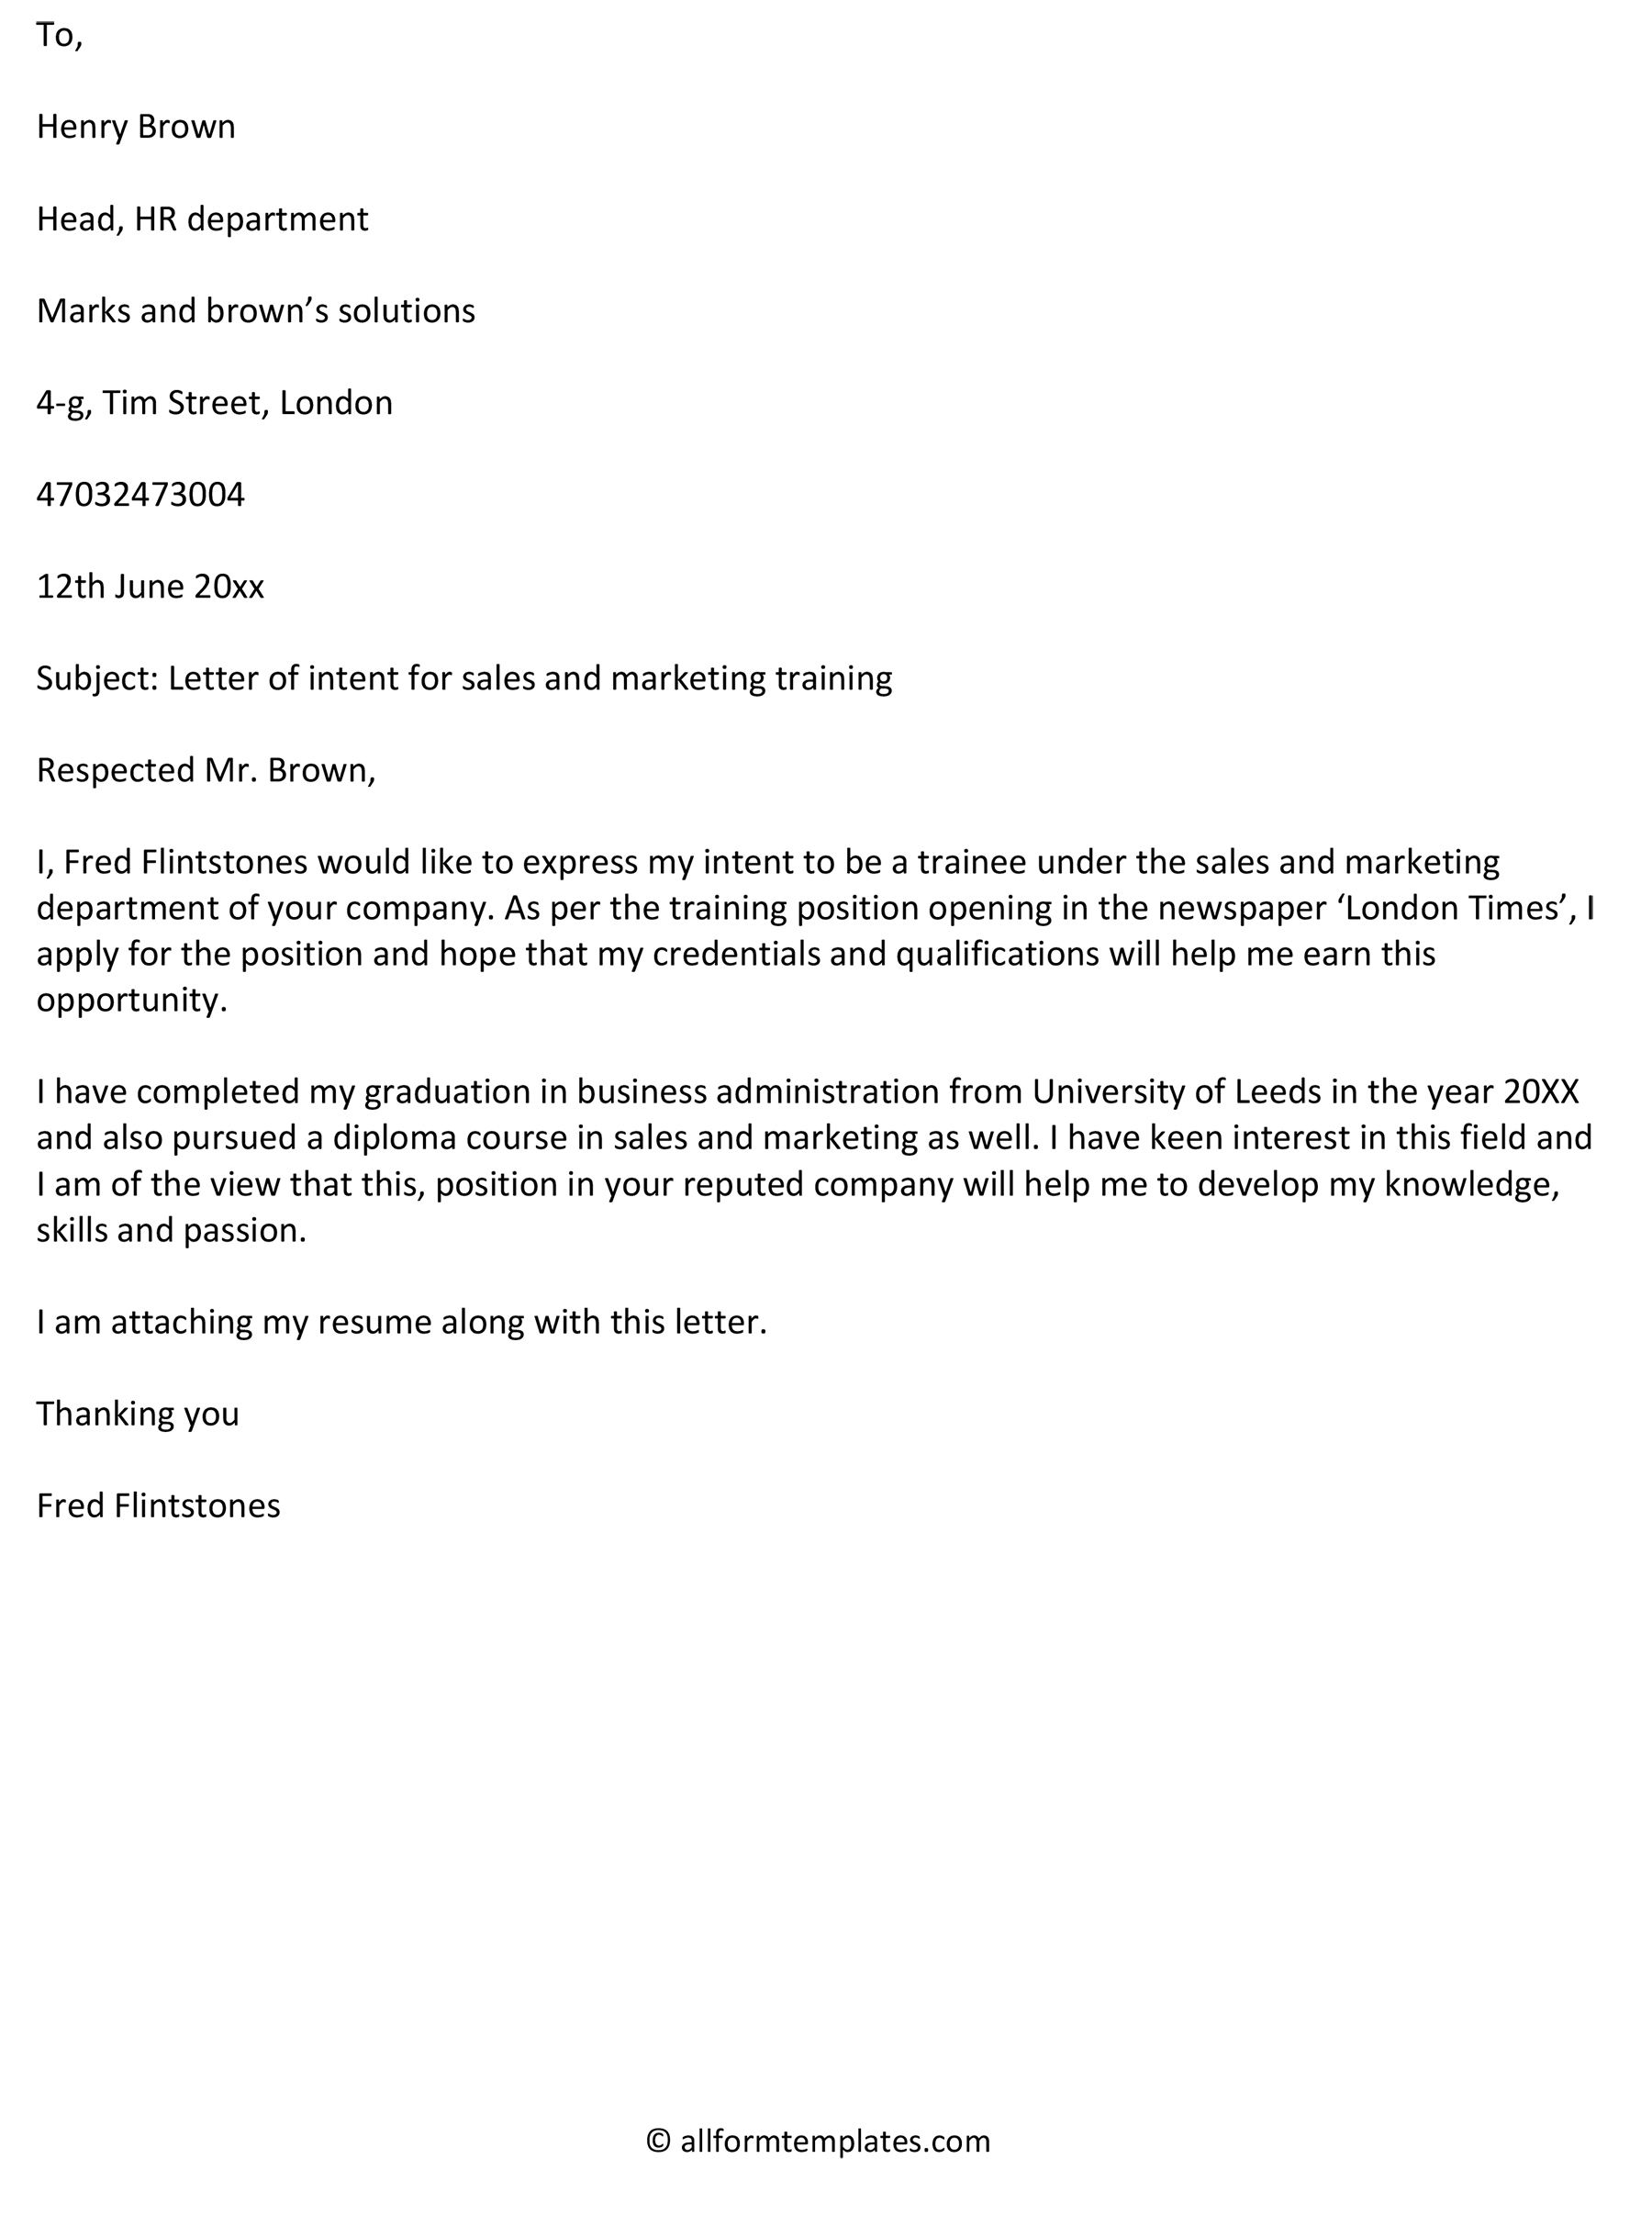 Letter of intent for sales and marketing training